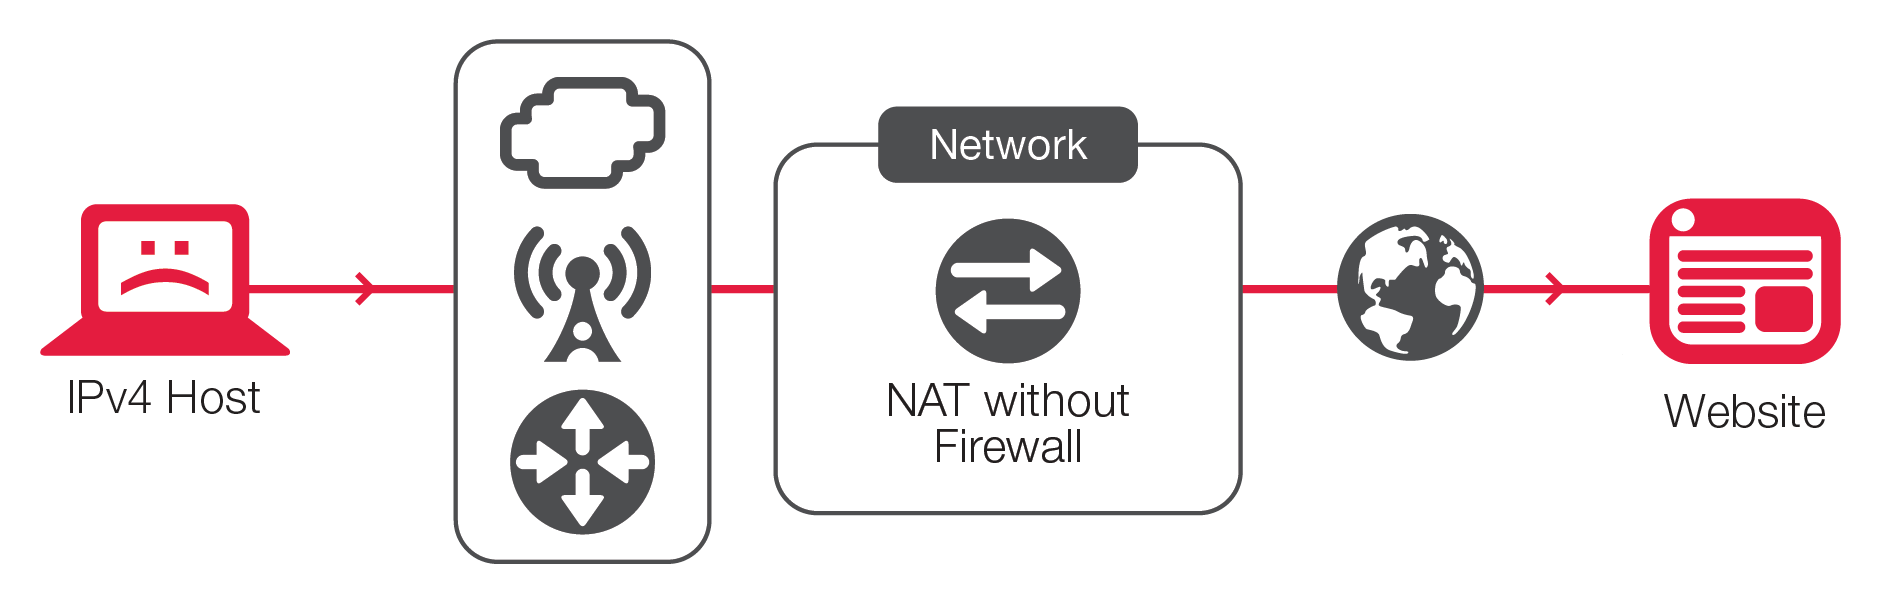 Stateful NAT provides no protection for willing or unwilling internal hosts, which may by used by botnets to attack the network or external targets